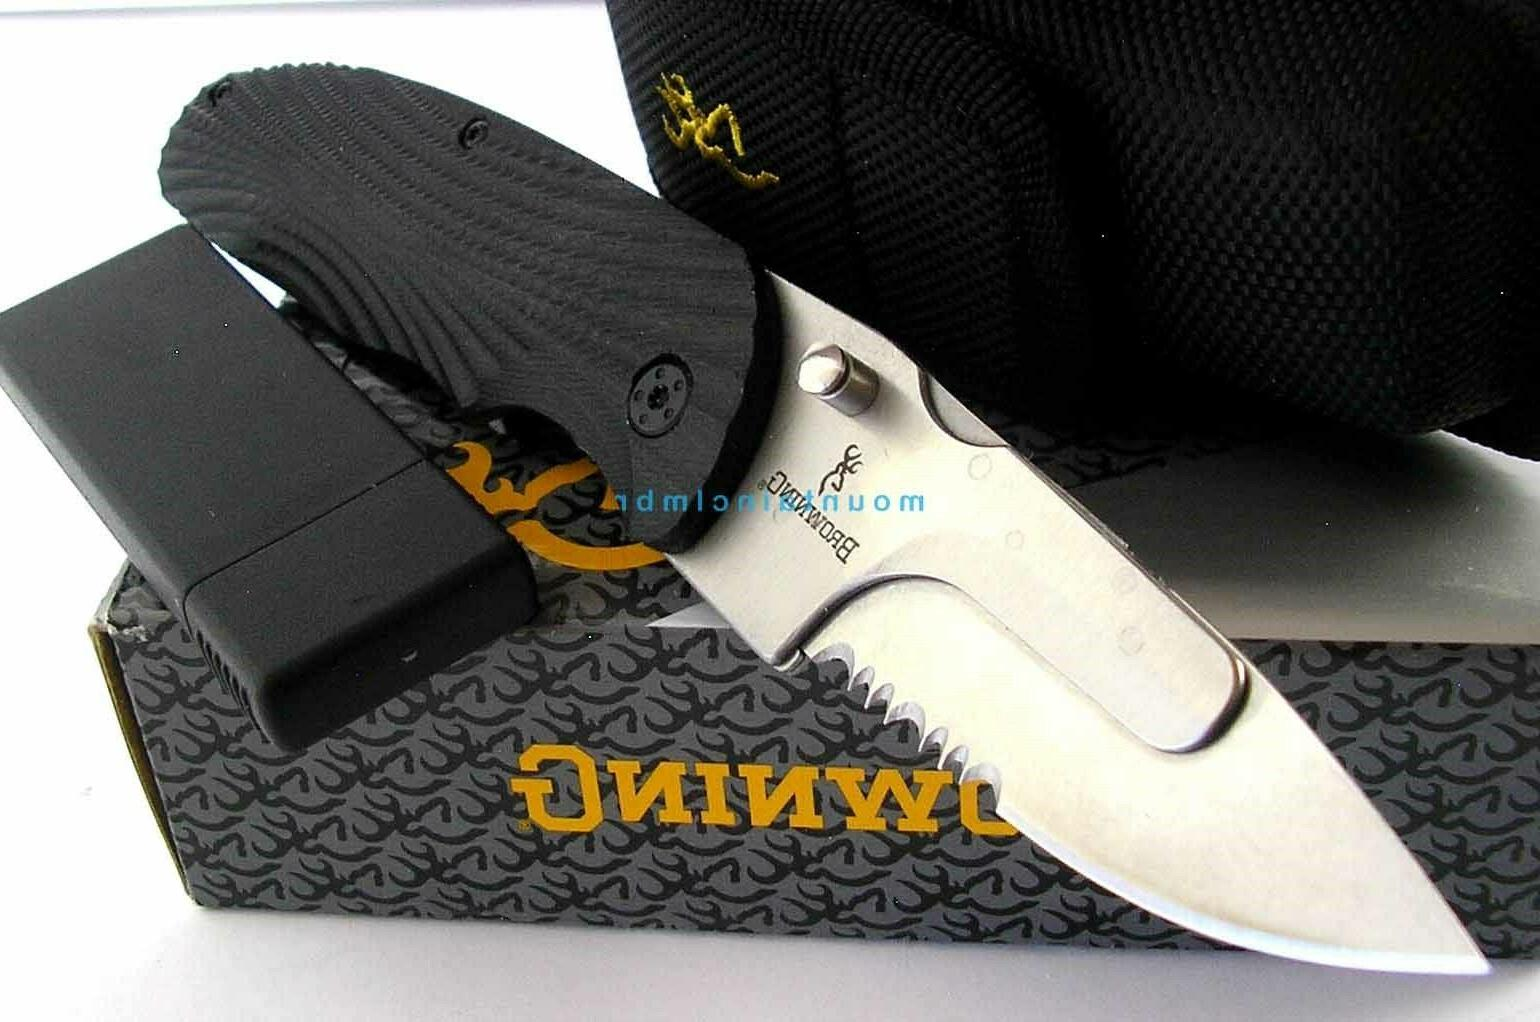 Browning Folding Utility Knife-Model 3220207-NEW IN BLISTER PACK